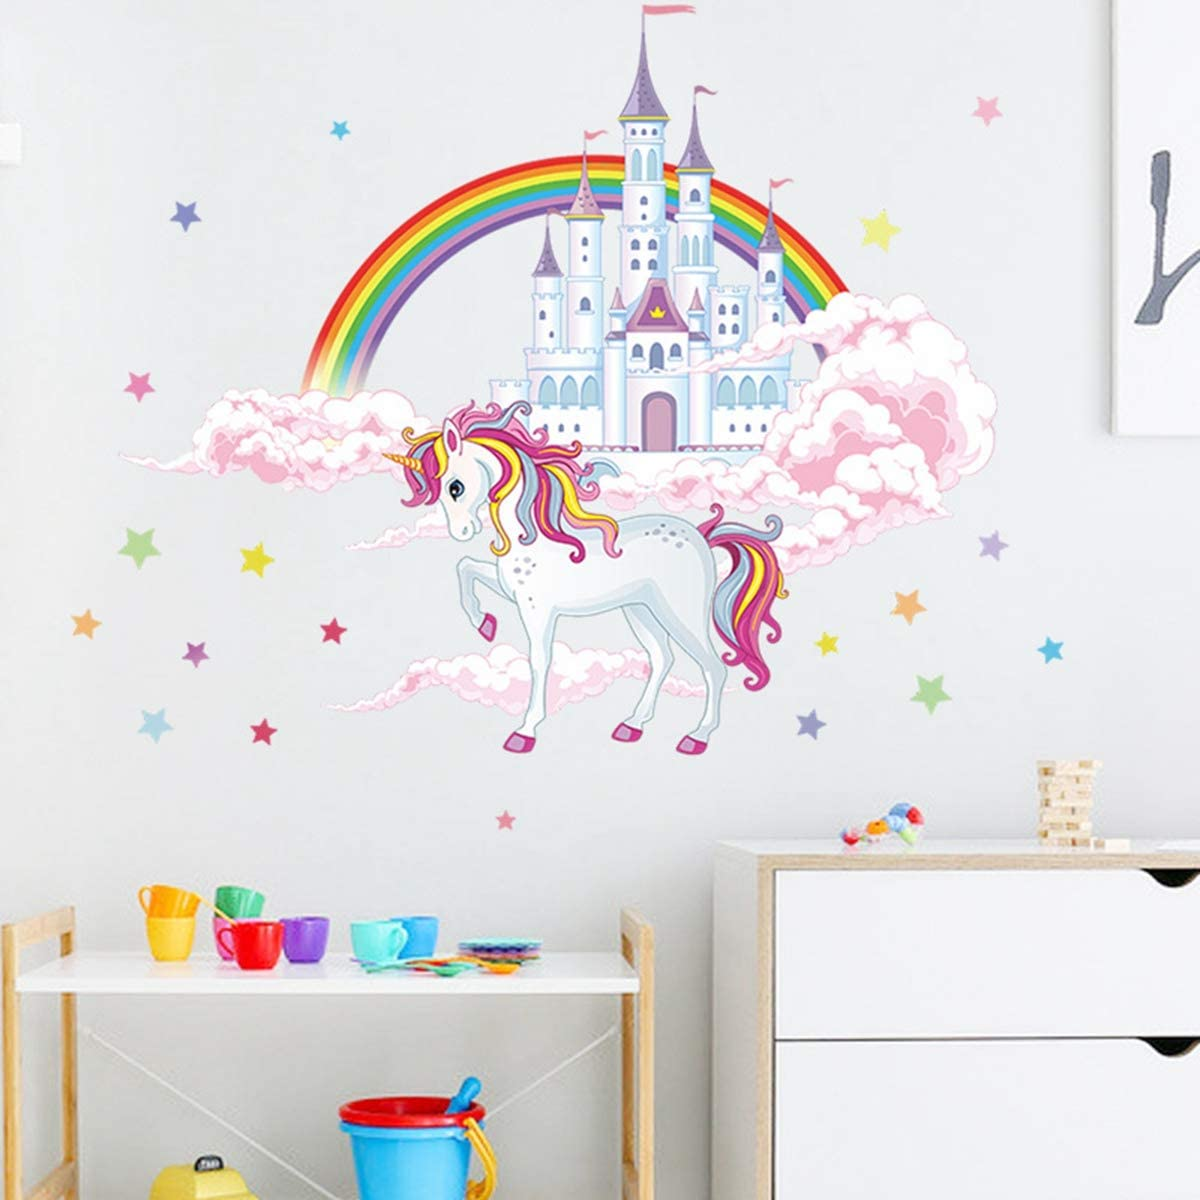 Reyoust Unicorn Selling High material Wall Decal Rainbow Decor w Stickers